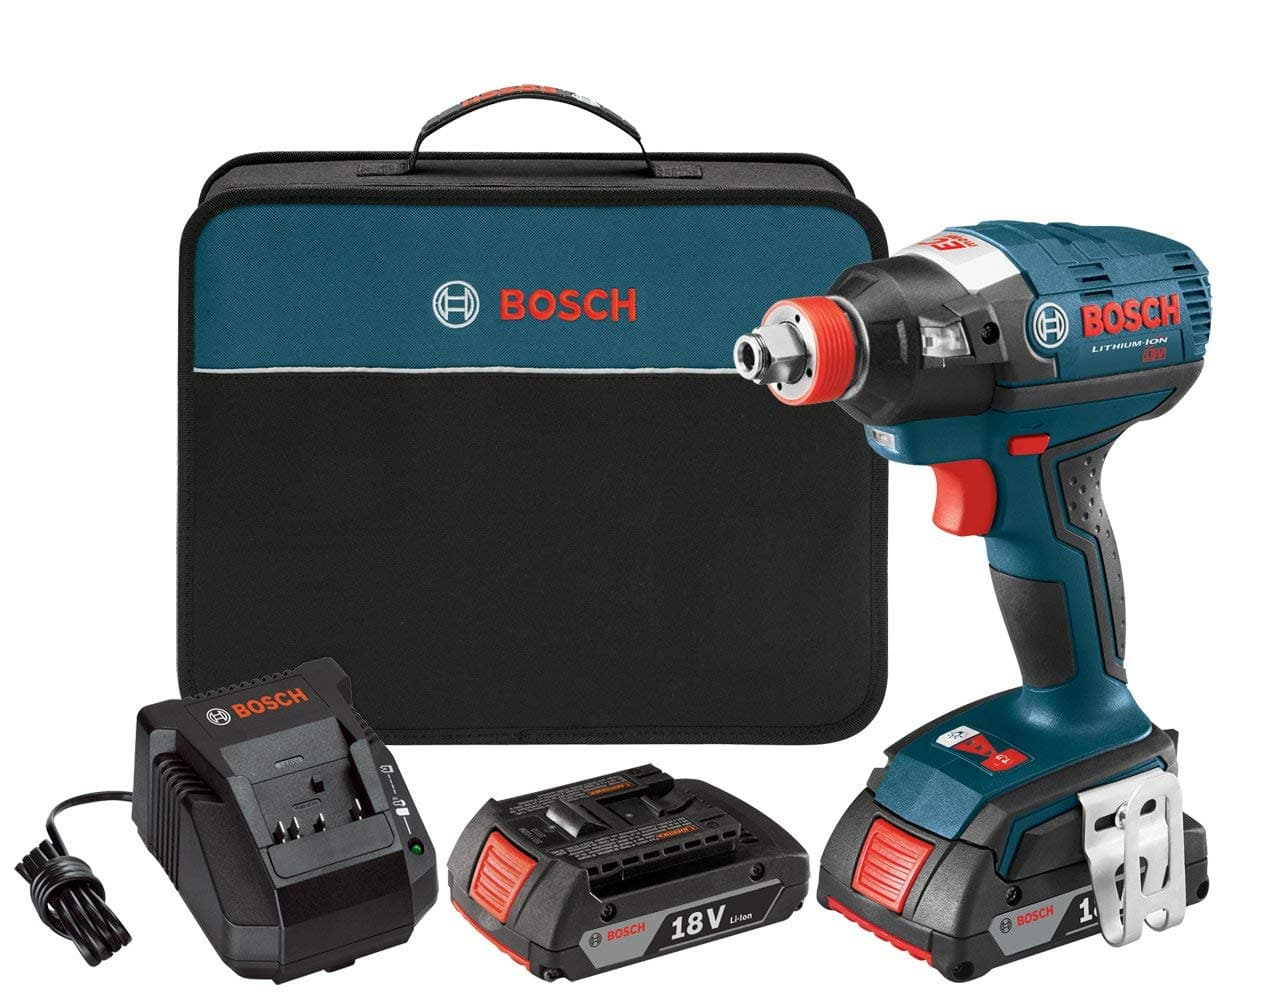 65d4955f980 Bosch 18V Brushless Impact Driver Kit w/ 2 Batteries, Charger & Case ...